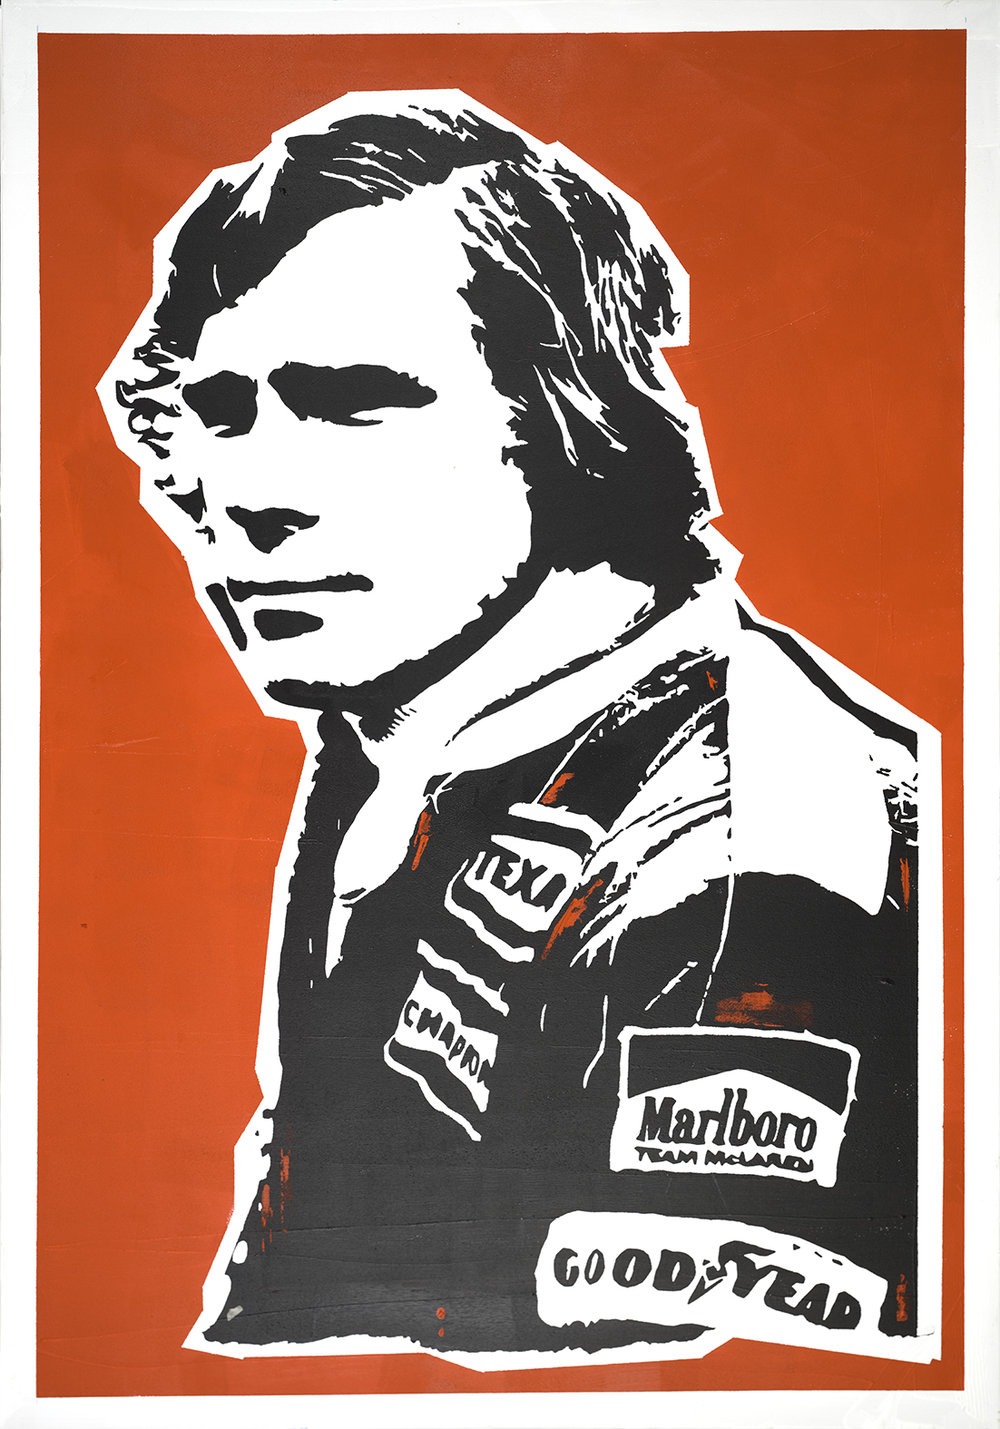 James Hunt by Julian Castaldi. Courtesy of the artist and Mestaria